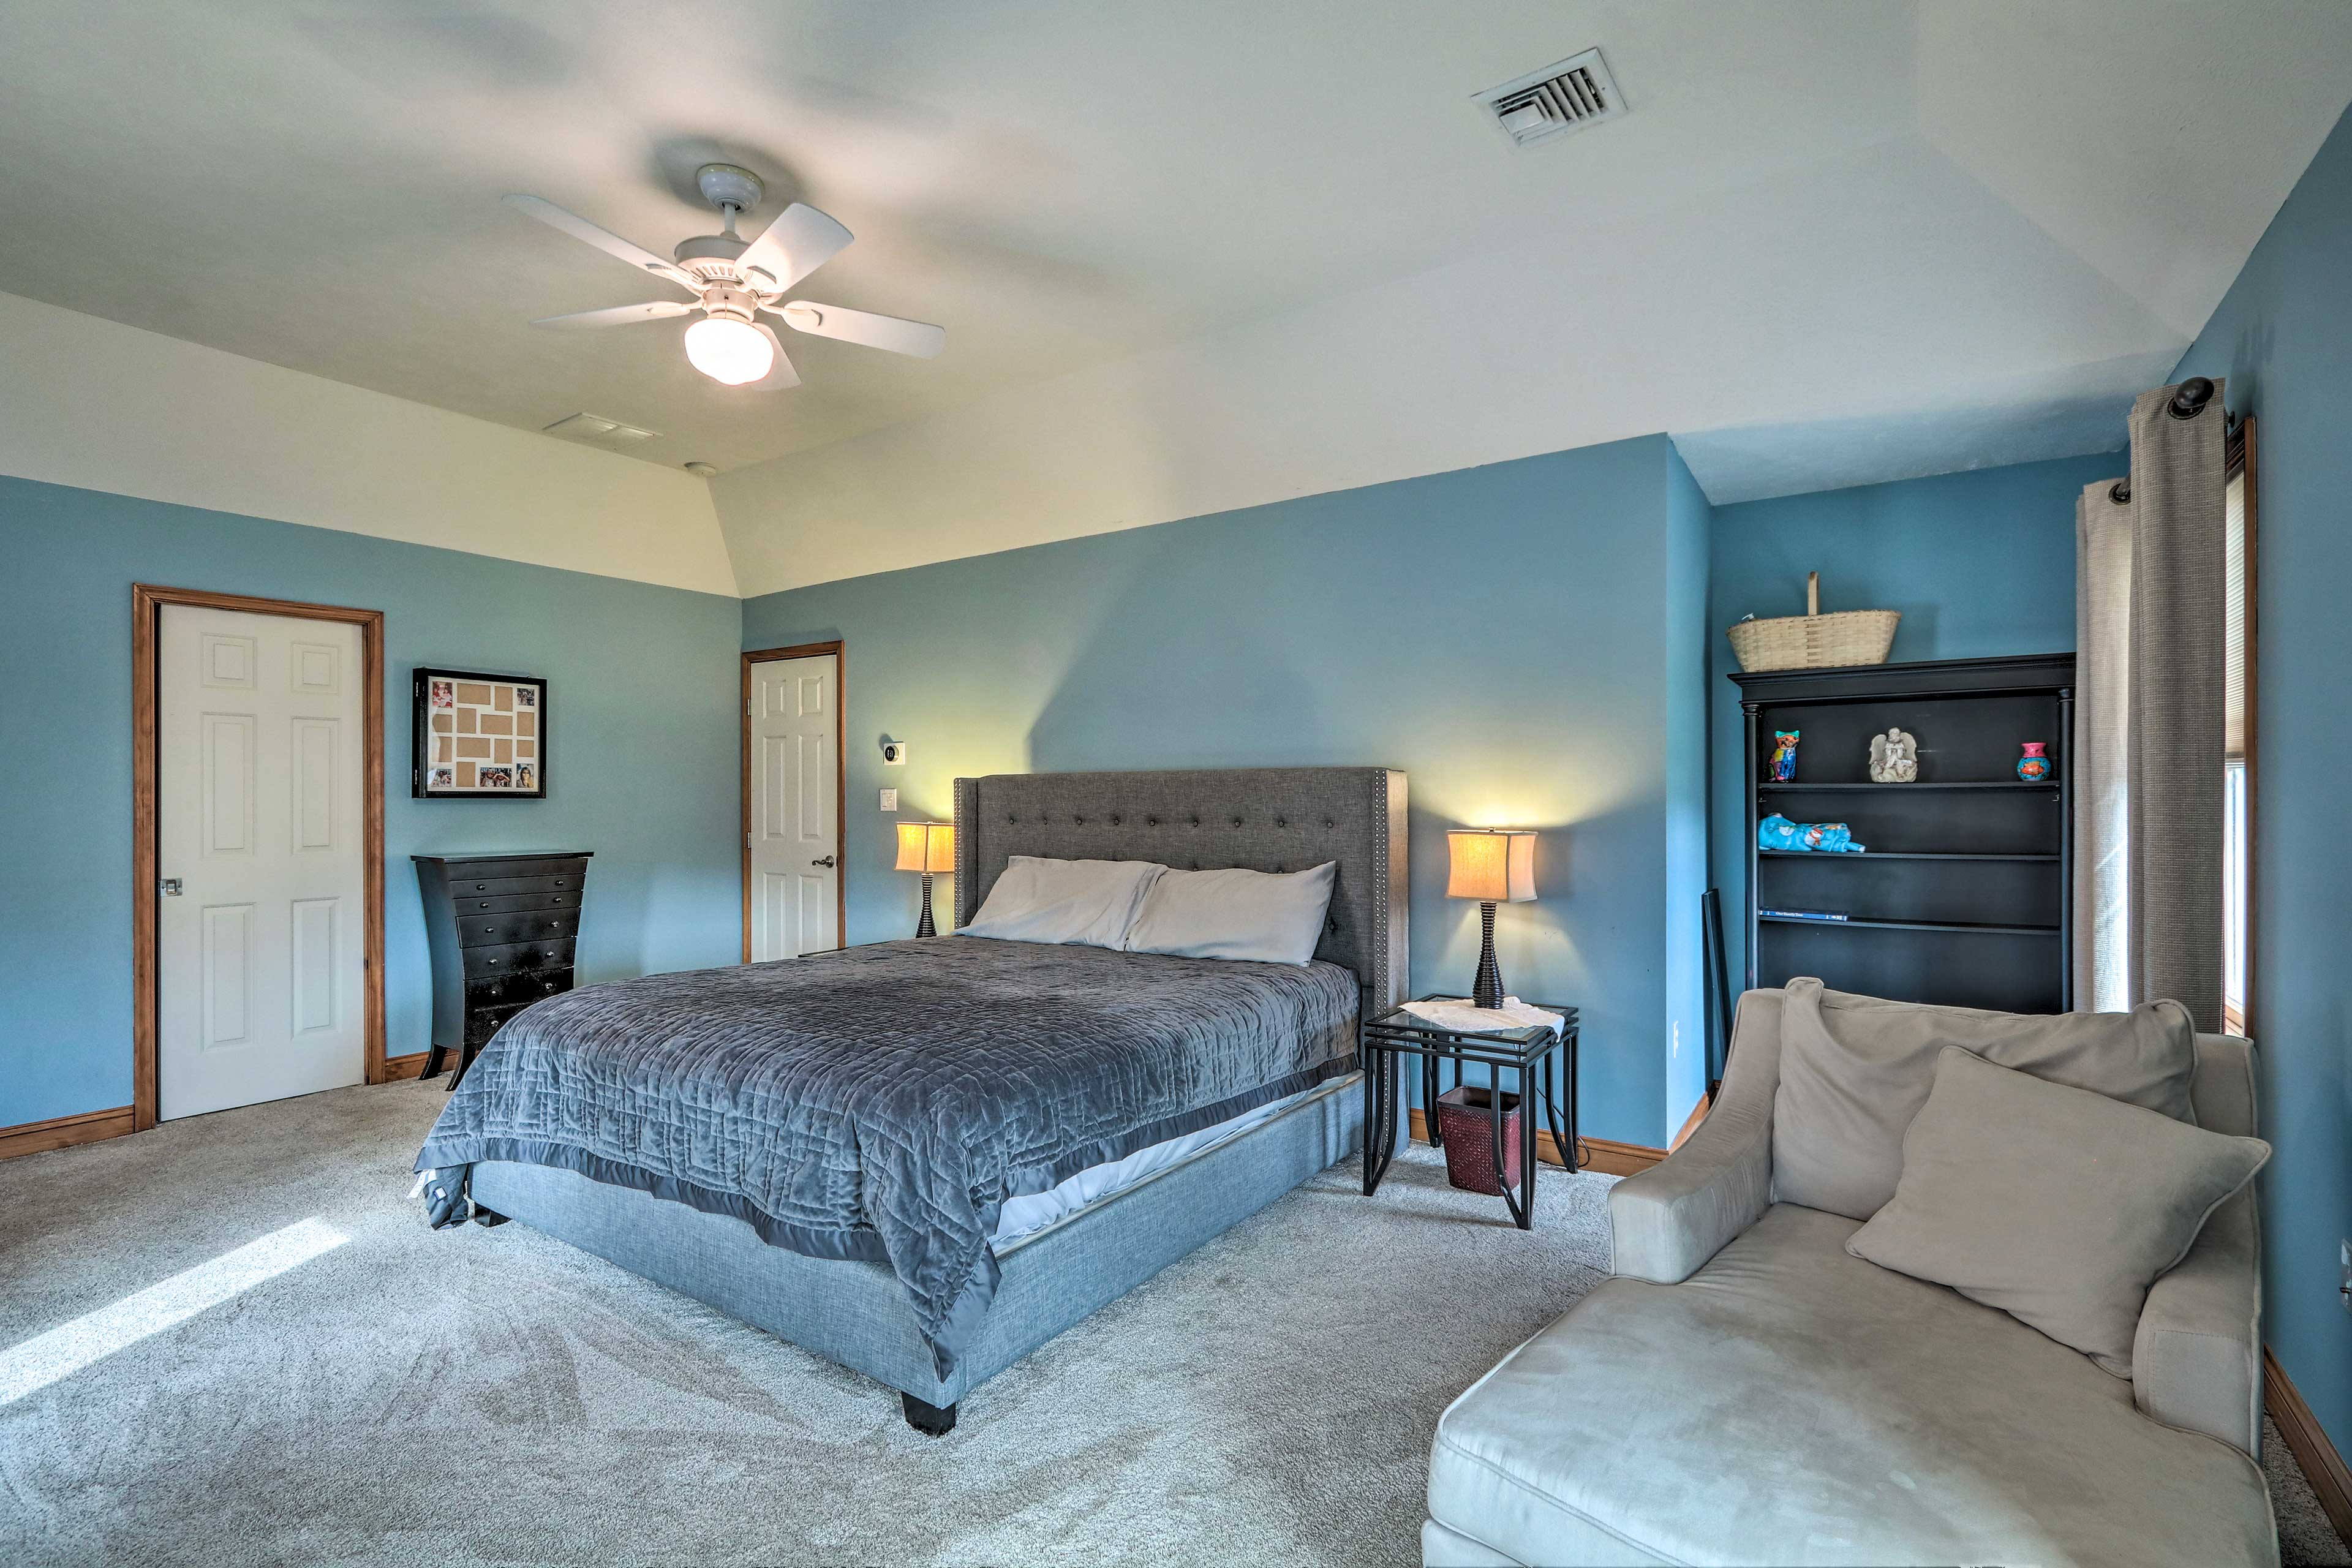 You'll have ample space to relax in the master bedroom.